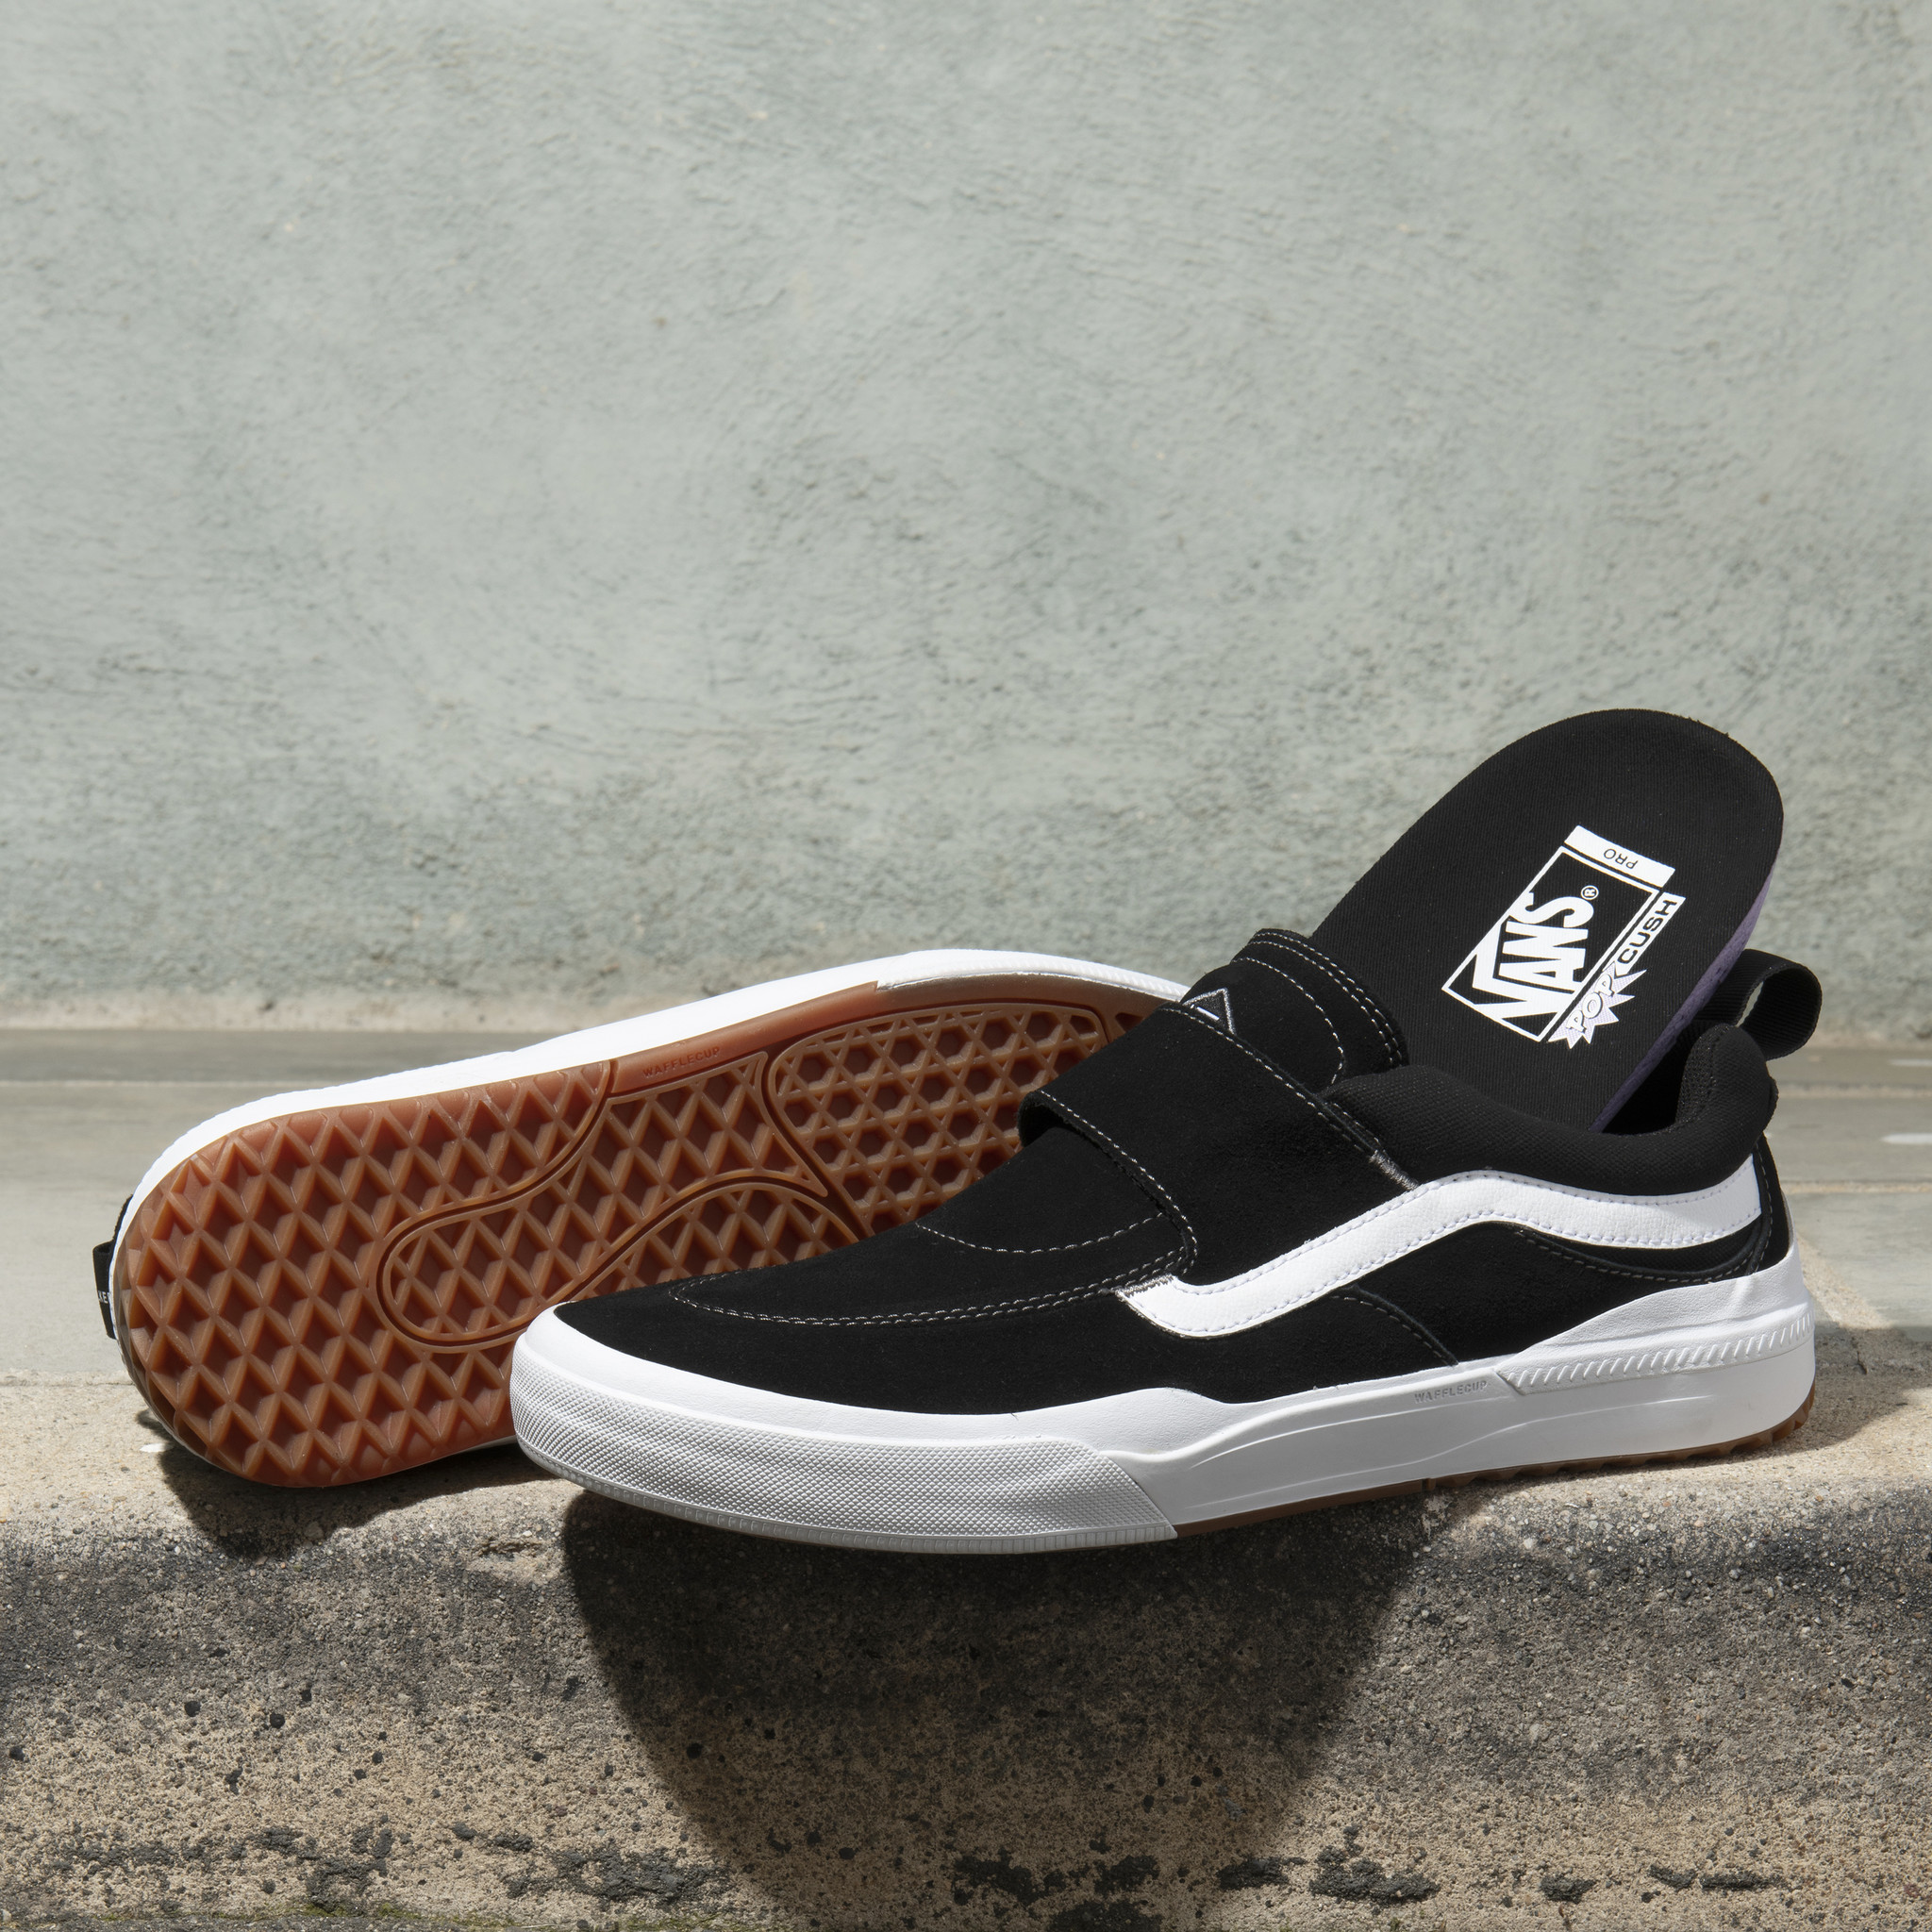 Vans Kyle Walker 2 Pro Shoes Online canada shredz